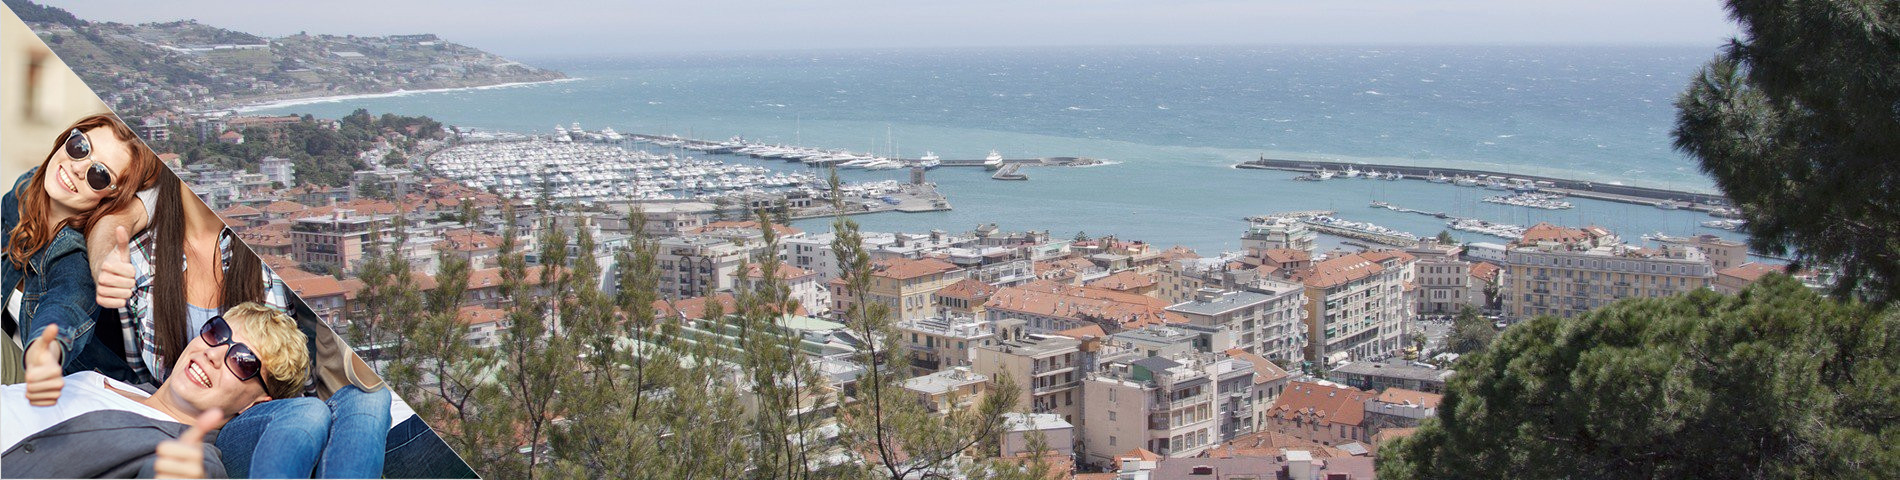 Sanremo - School Trips / Groups